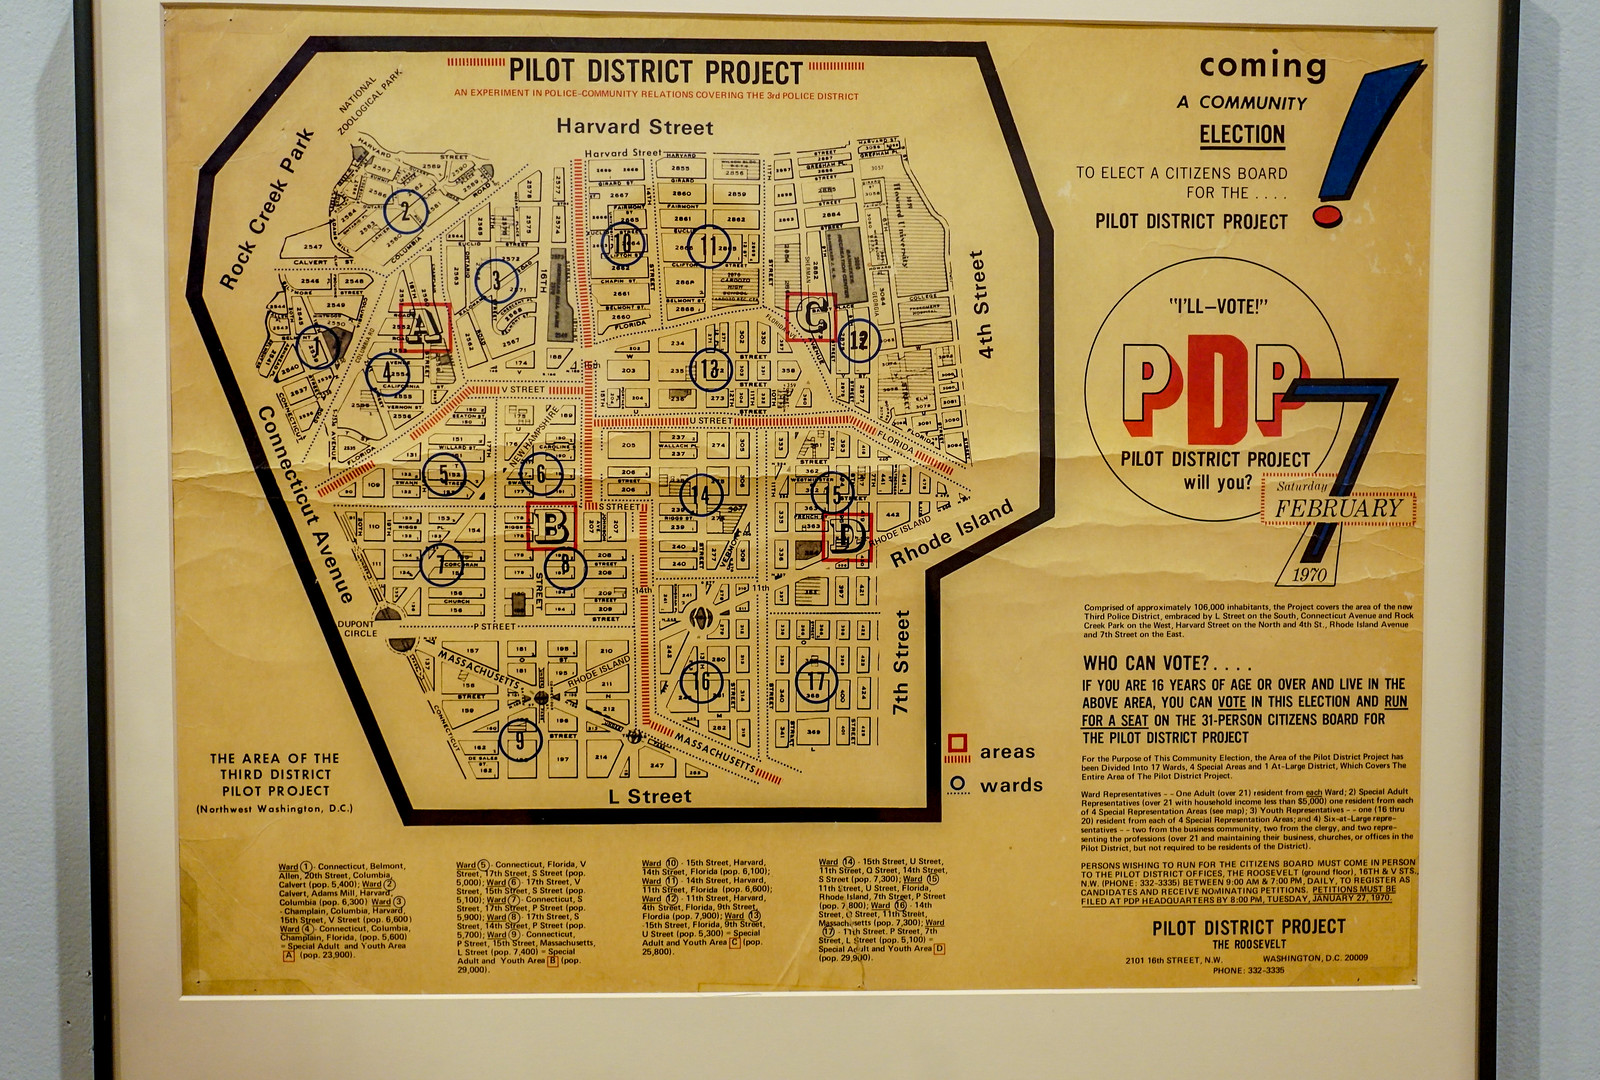 2018.04.01 Pilot District Project 1968-1973, National Building 4797